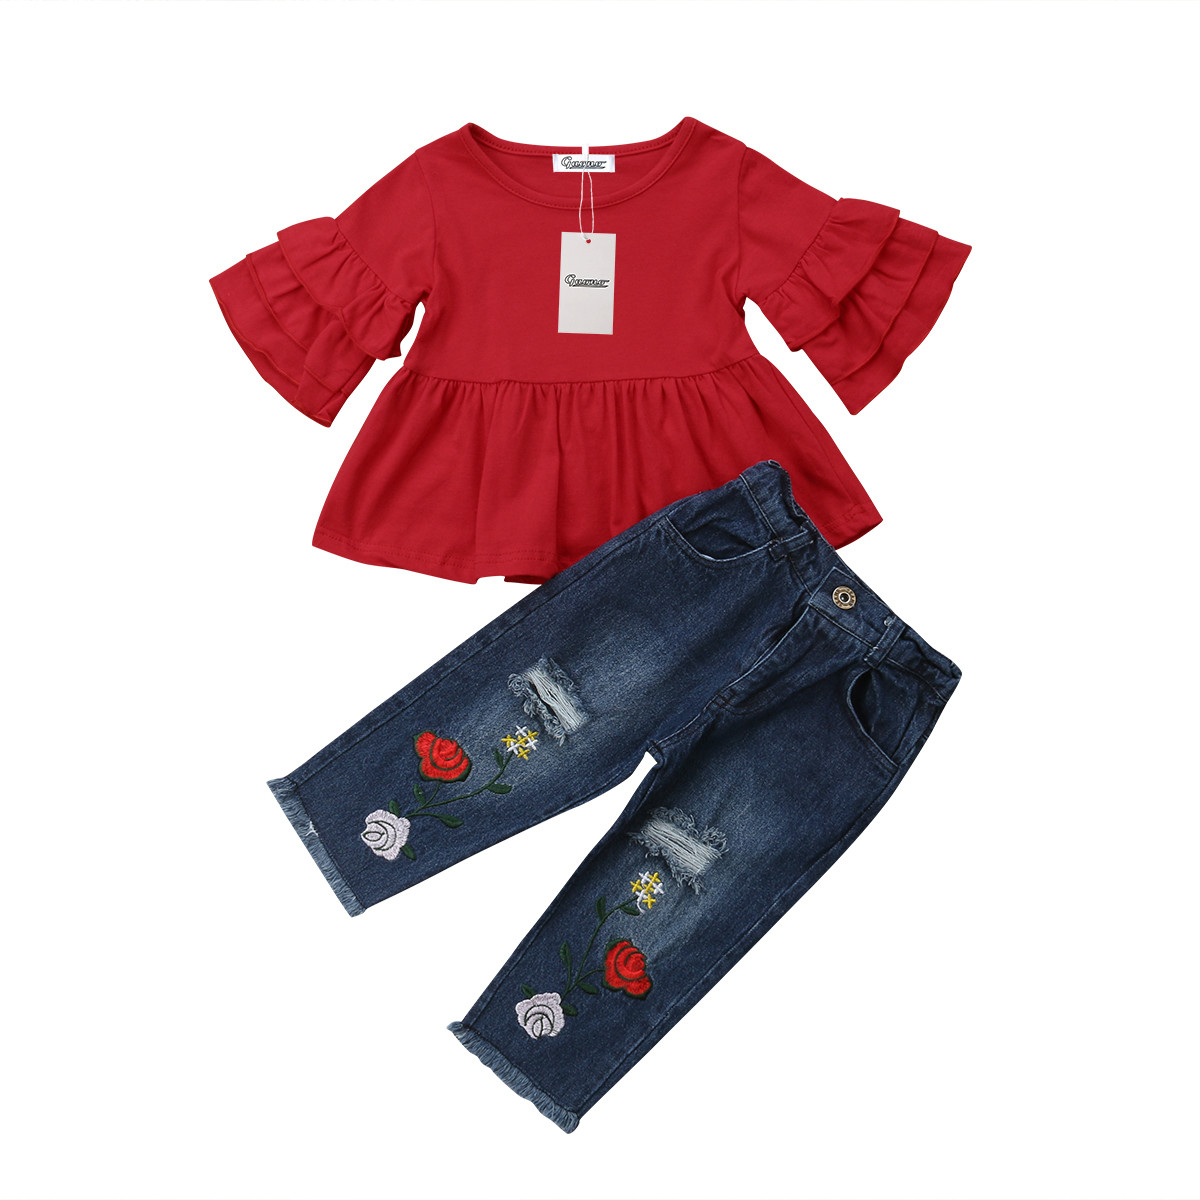 US Kids Baby Girls Outfits Clothes Bow Long Sleeve T-shirt Tops+Pants 2PCS Set